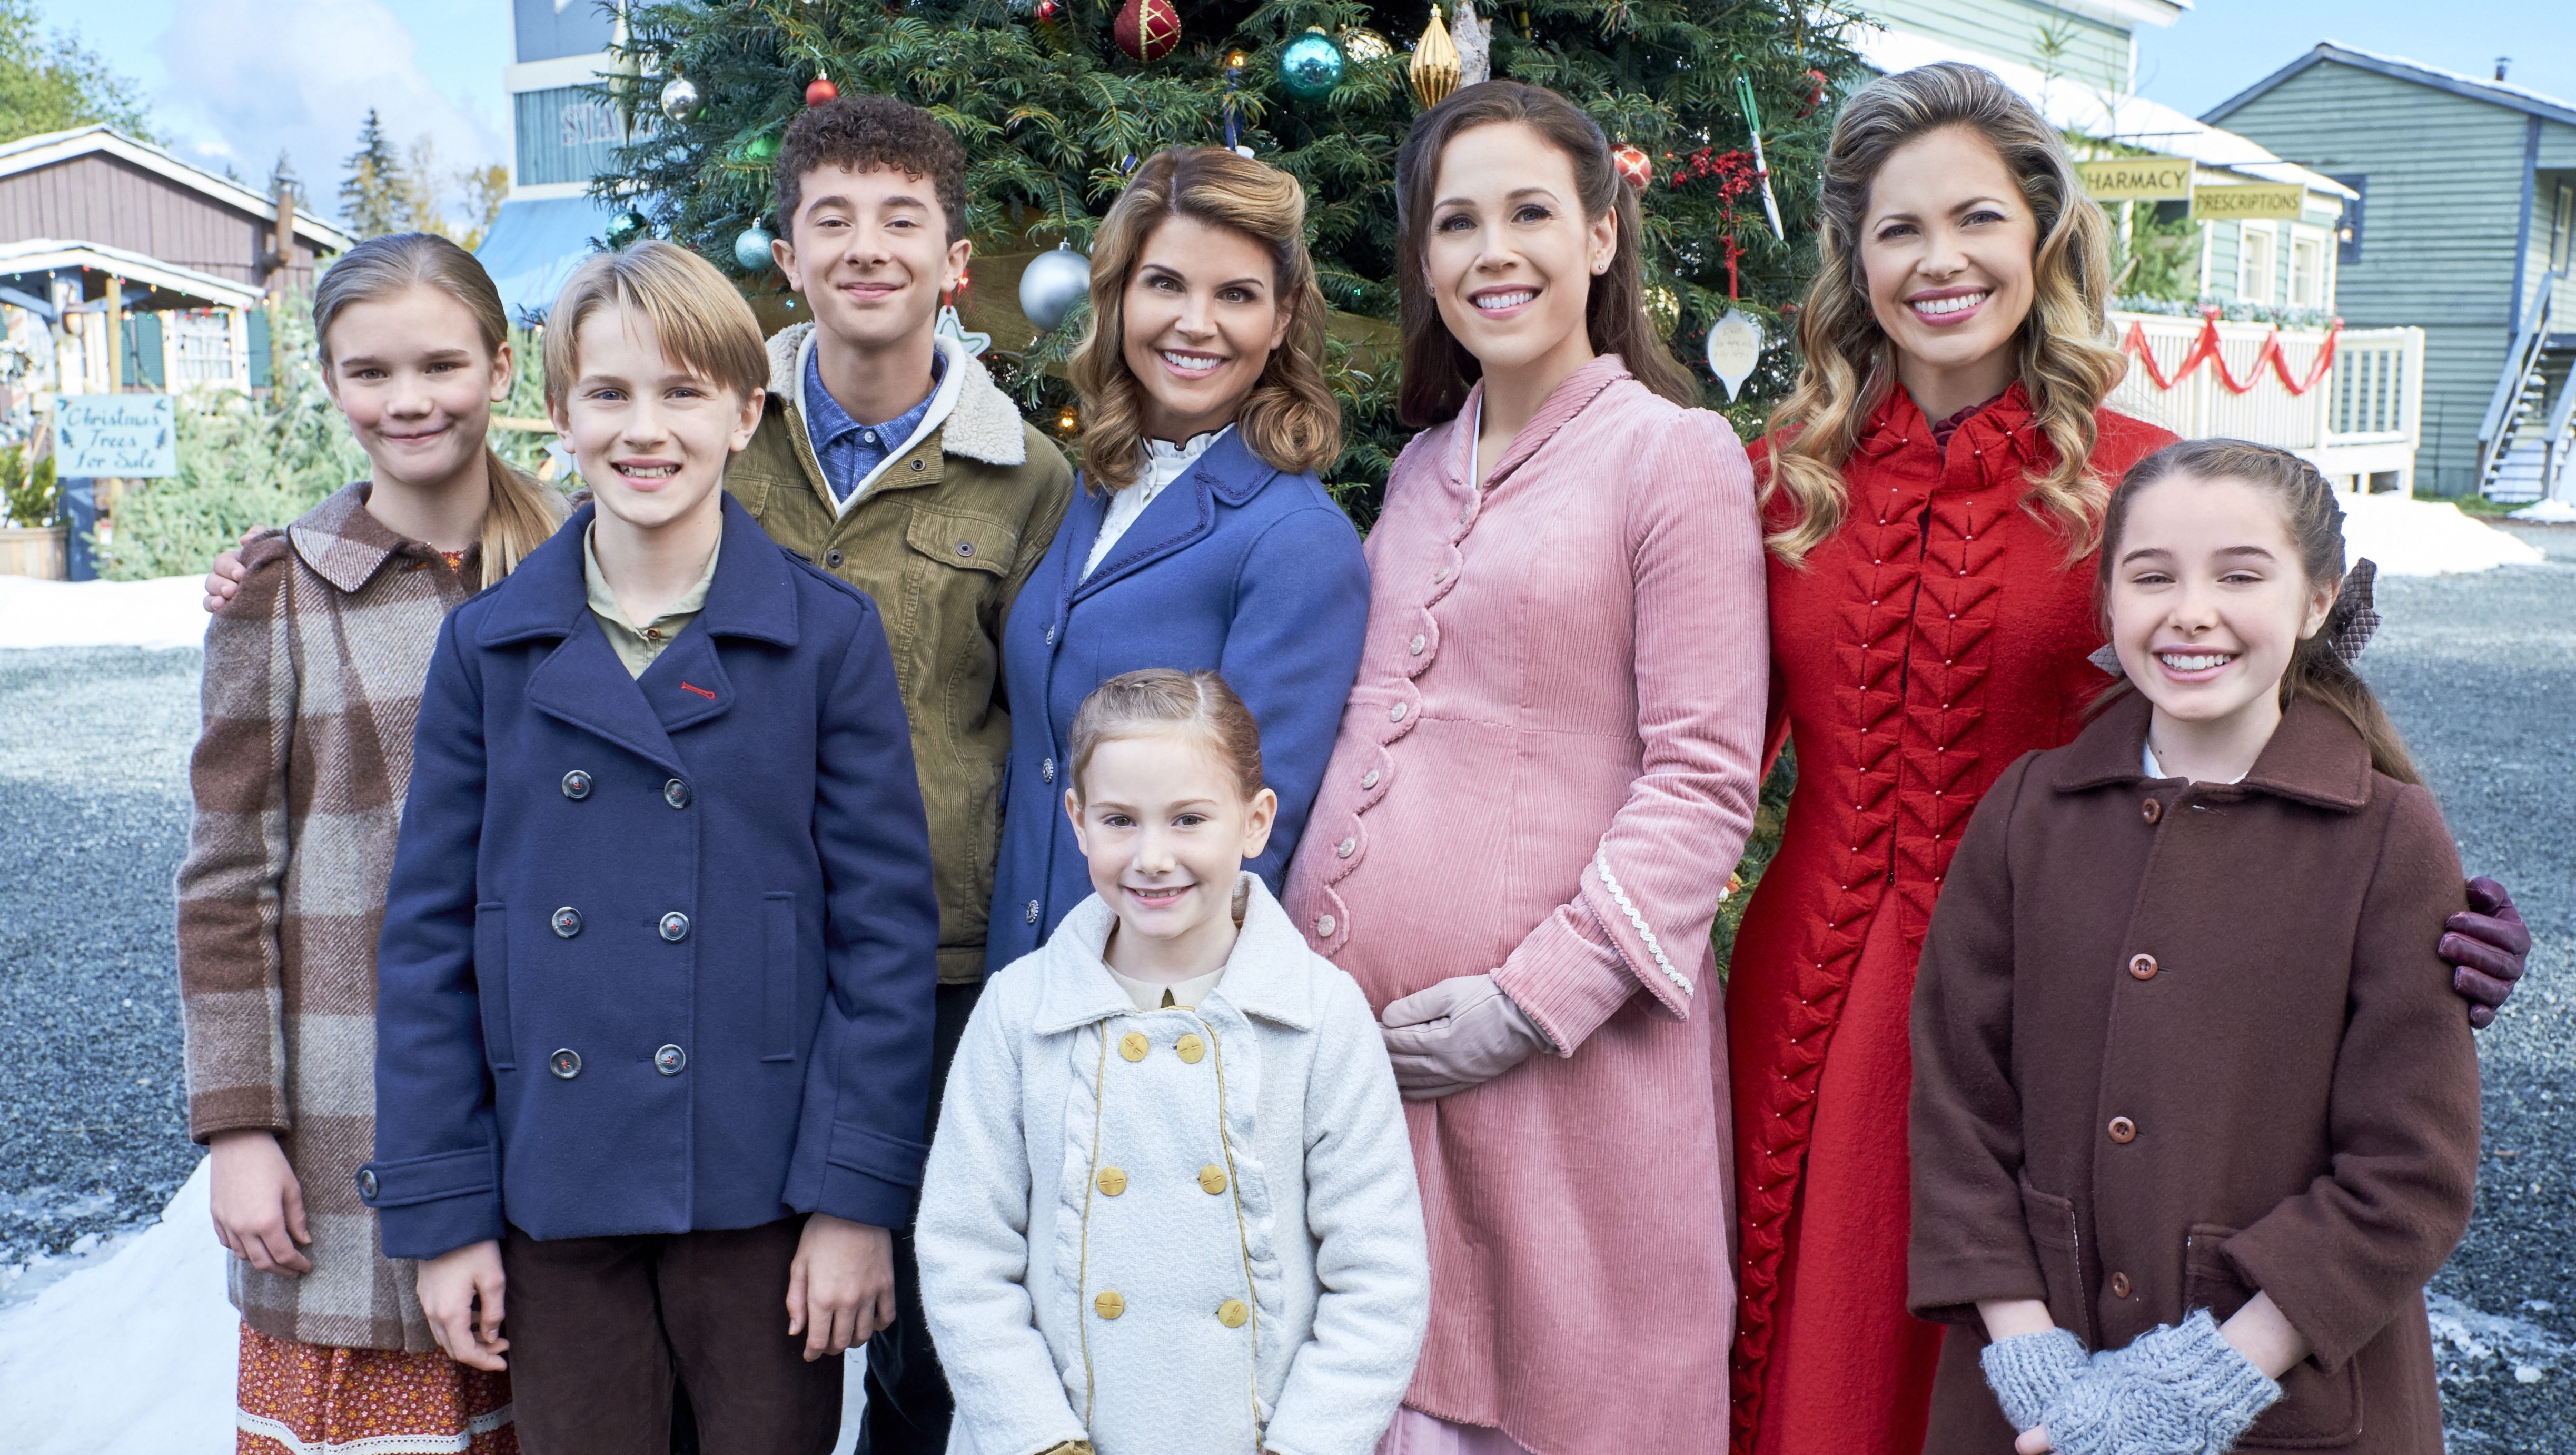 When Calls The Heart The Greatest Christmas Blessing Full Stream Online 2020 When Calls the Heart Christmas 2018 Stream: Watch WCTH Online